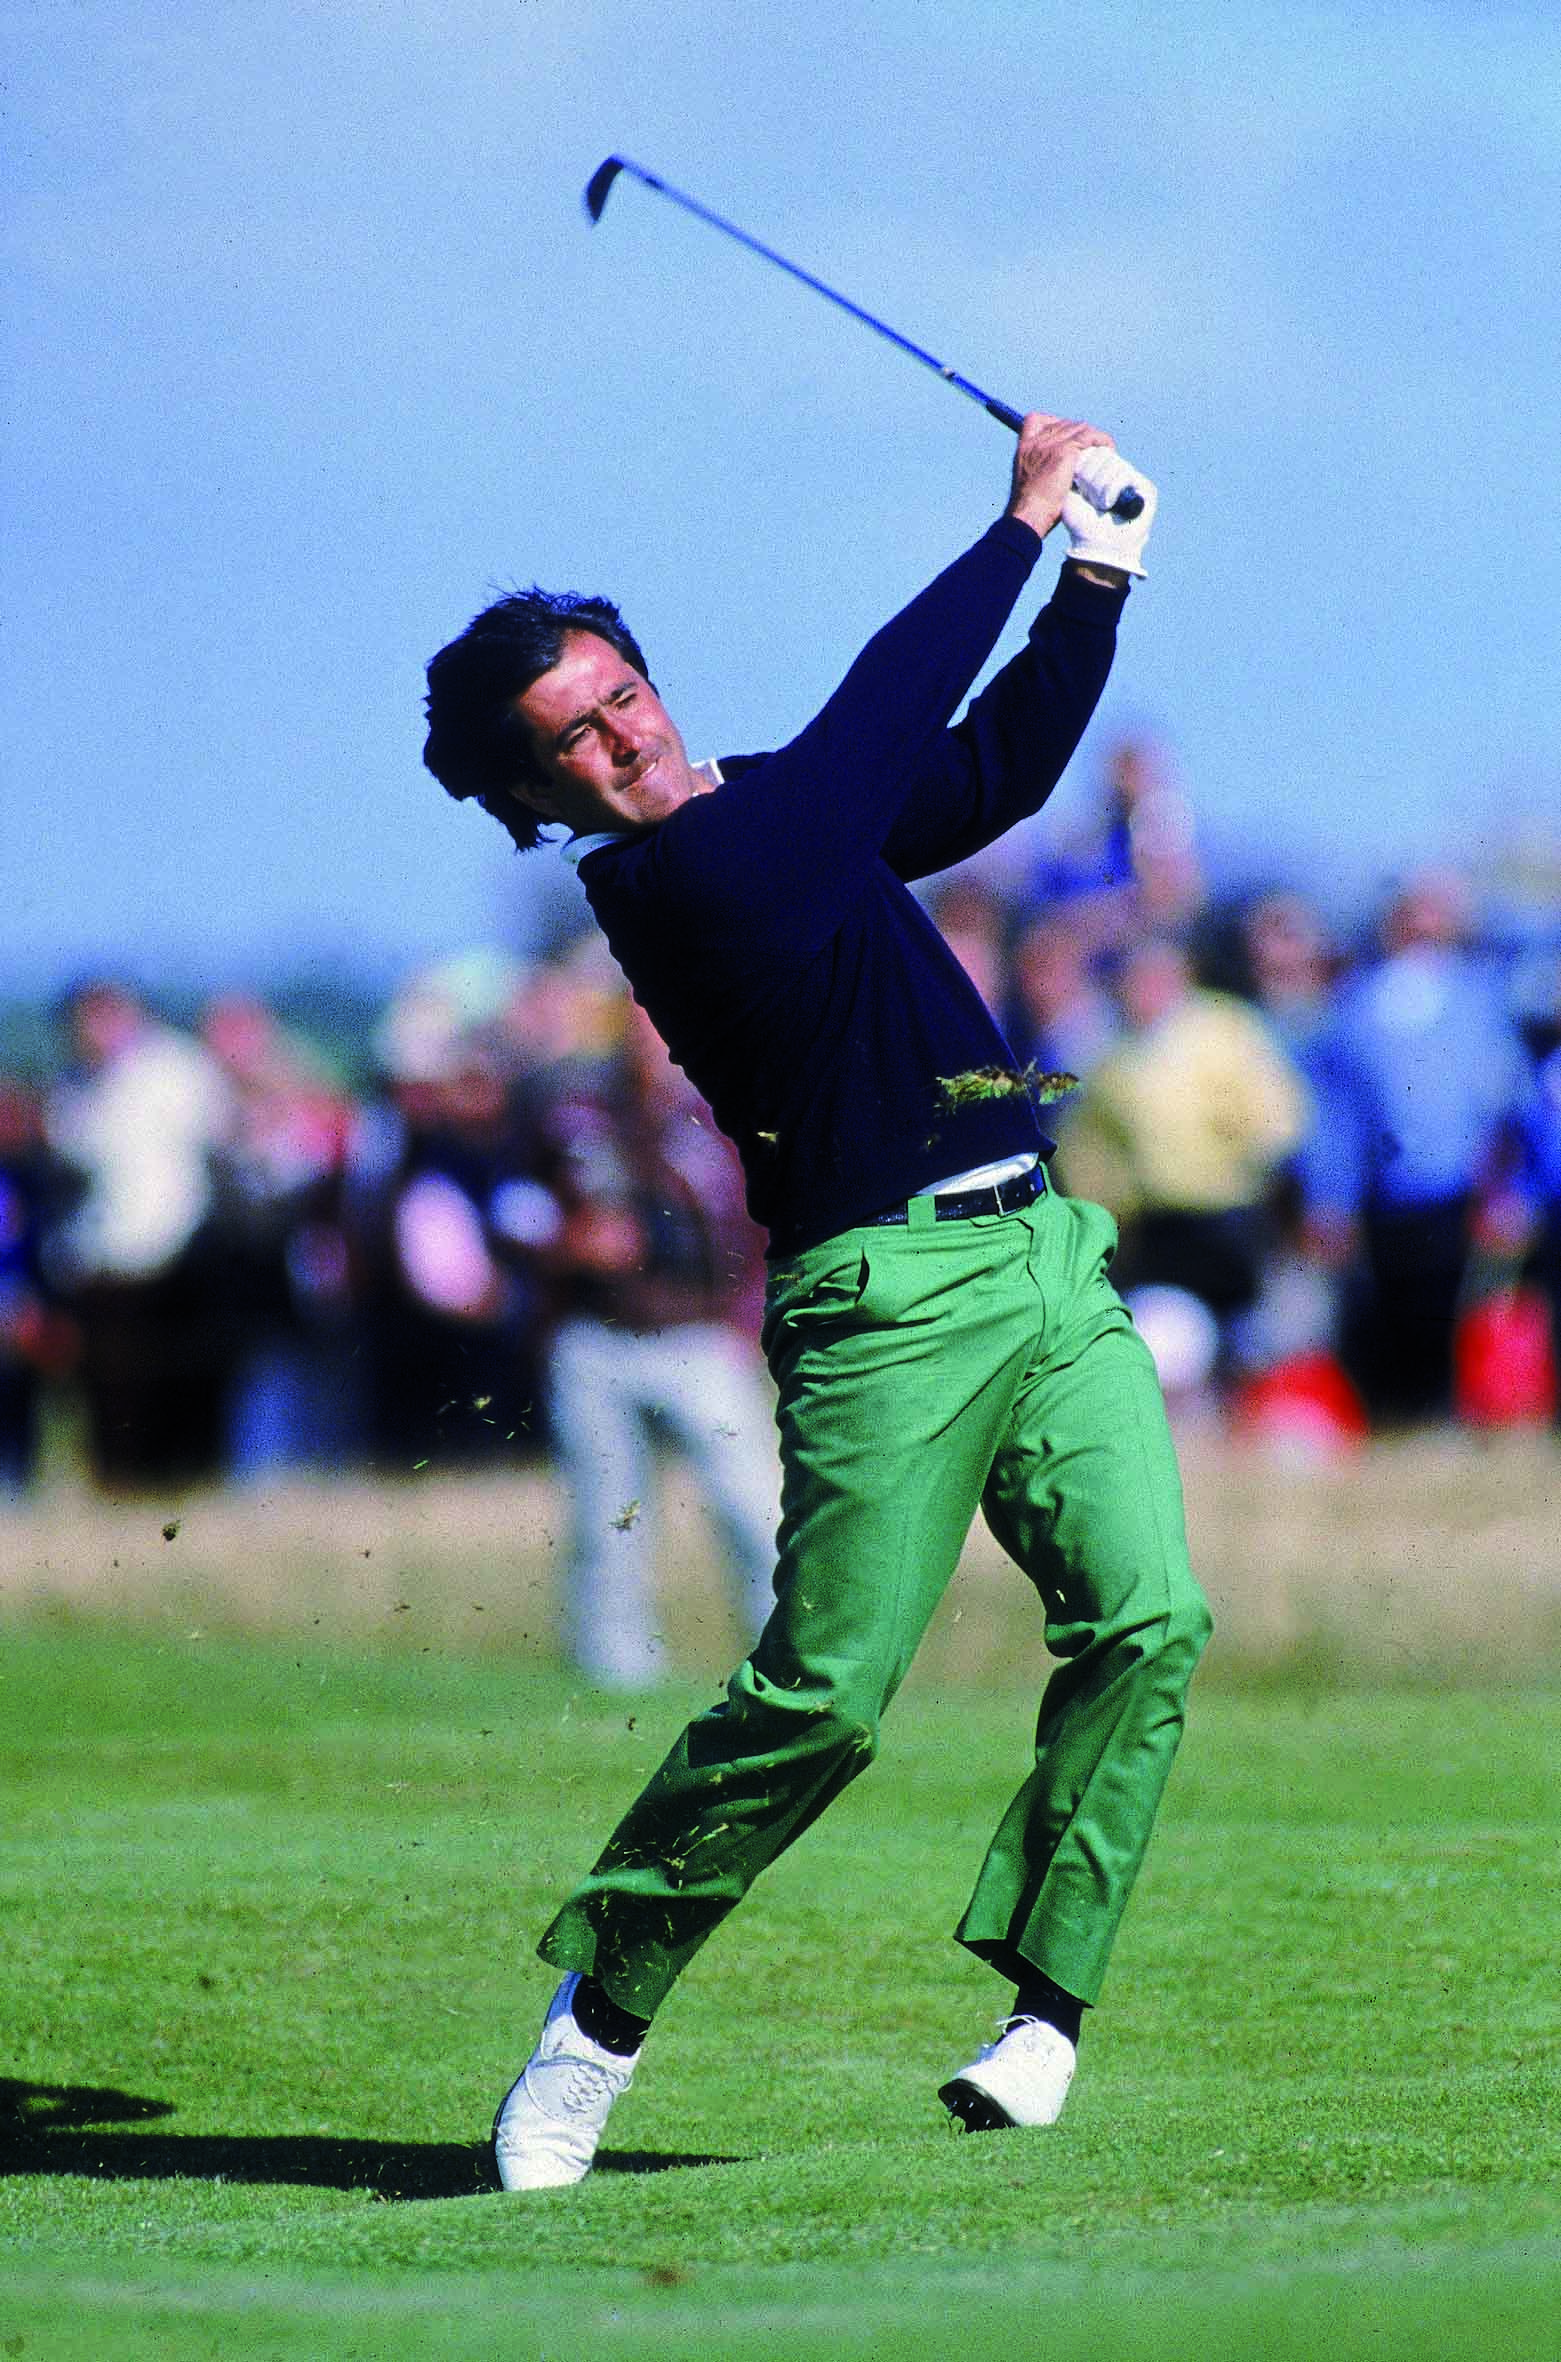 Ballesteros-golf-golfy-2 Severiano Ballesteros - Un immense champion